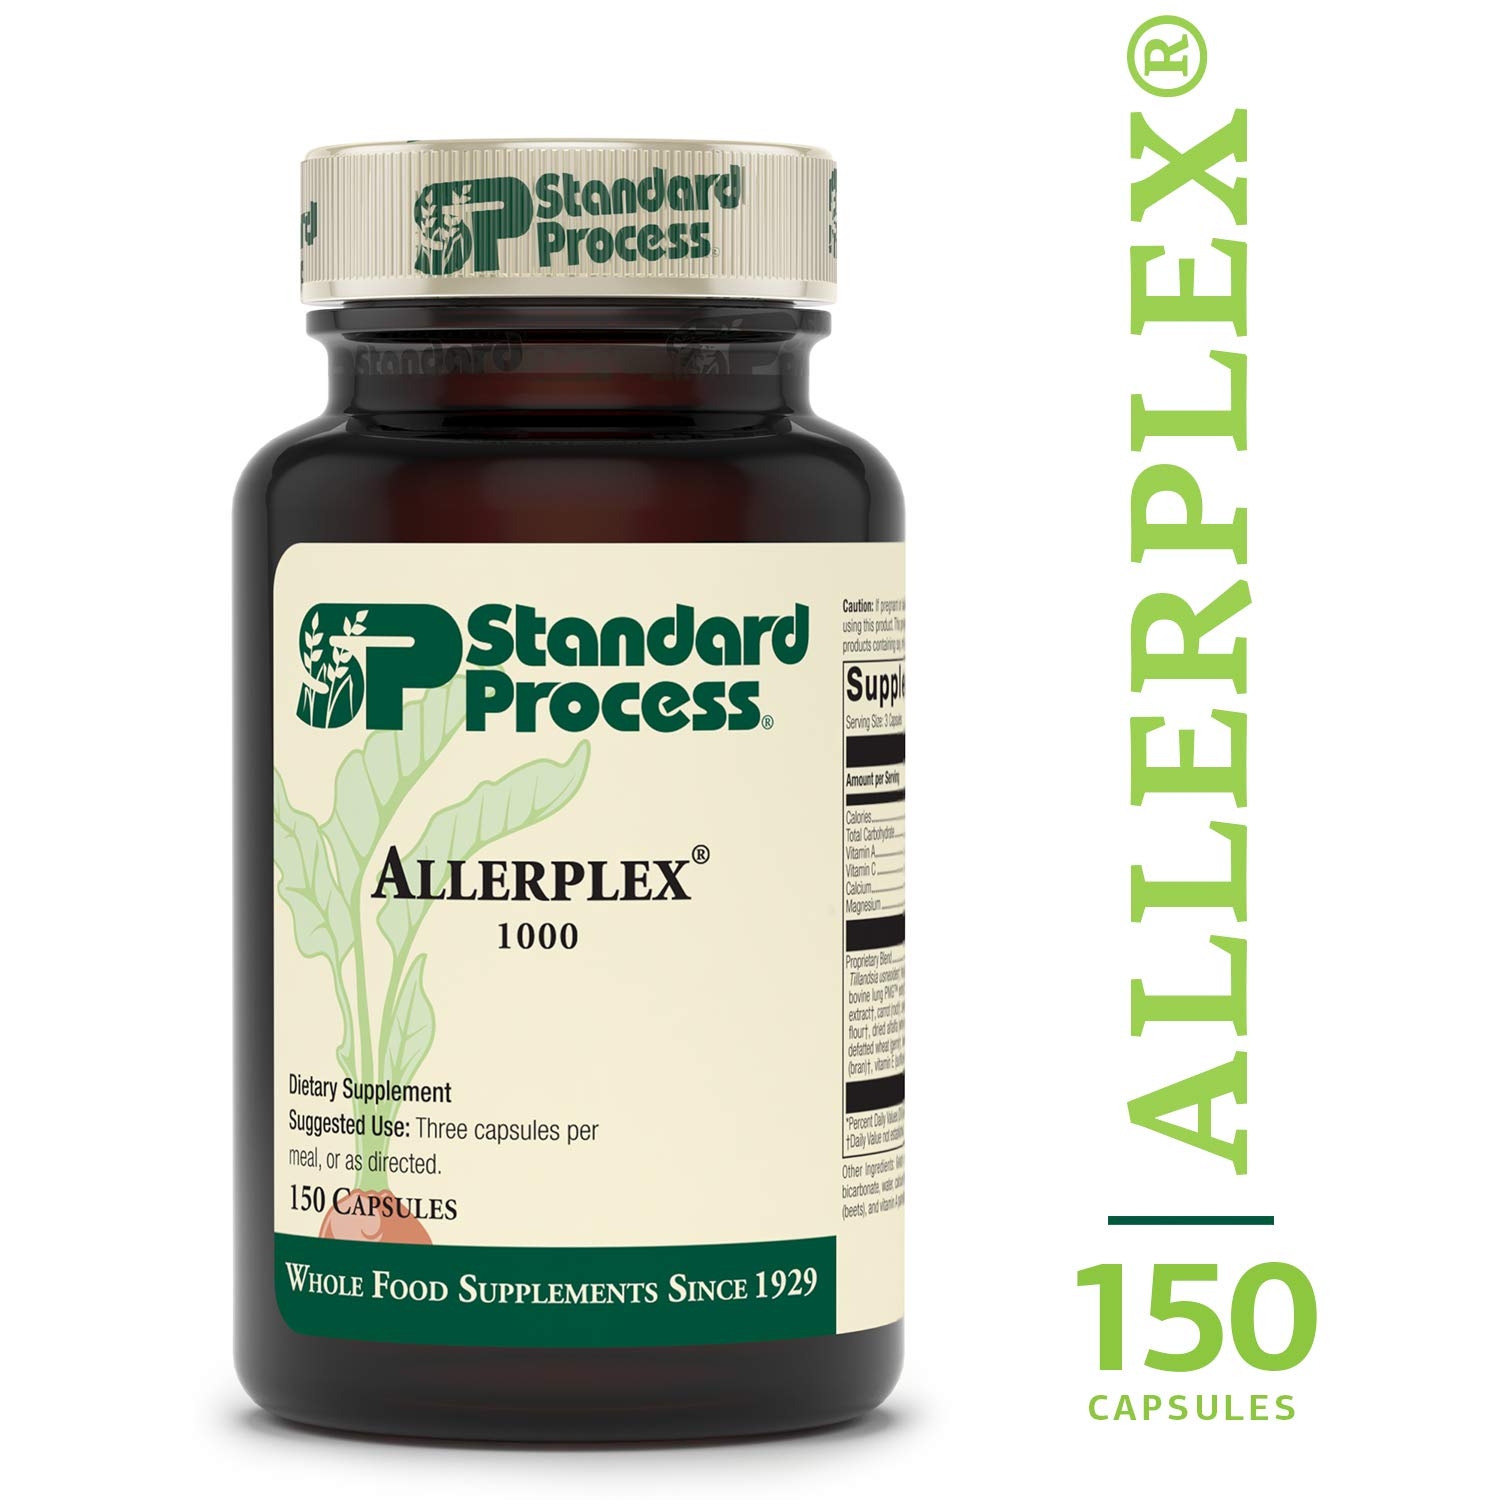 Standard Process - Allerplex - 525 IU Vitamin A, 4mg Vitamin C, 20mg Calcium, 12mg Magnesium, Supports Healthy Function of Liver, Sinuses, and Lungs - 150 Capsules by Standard Process